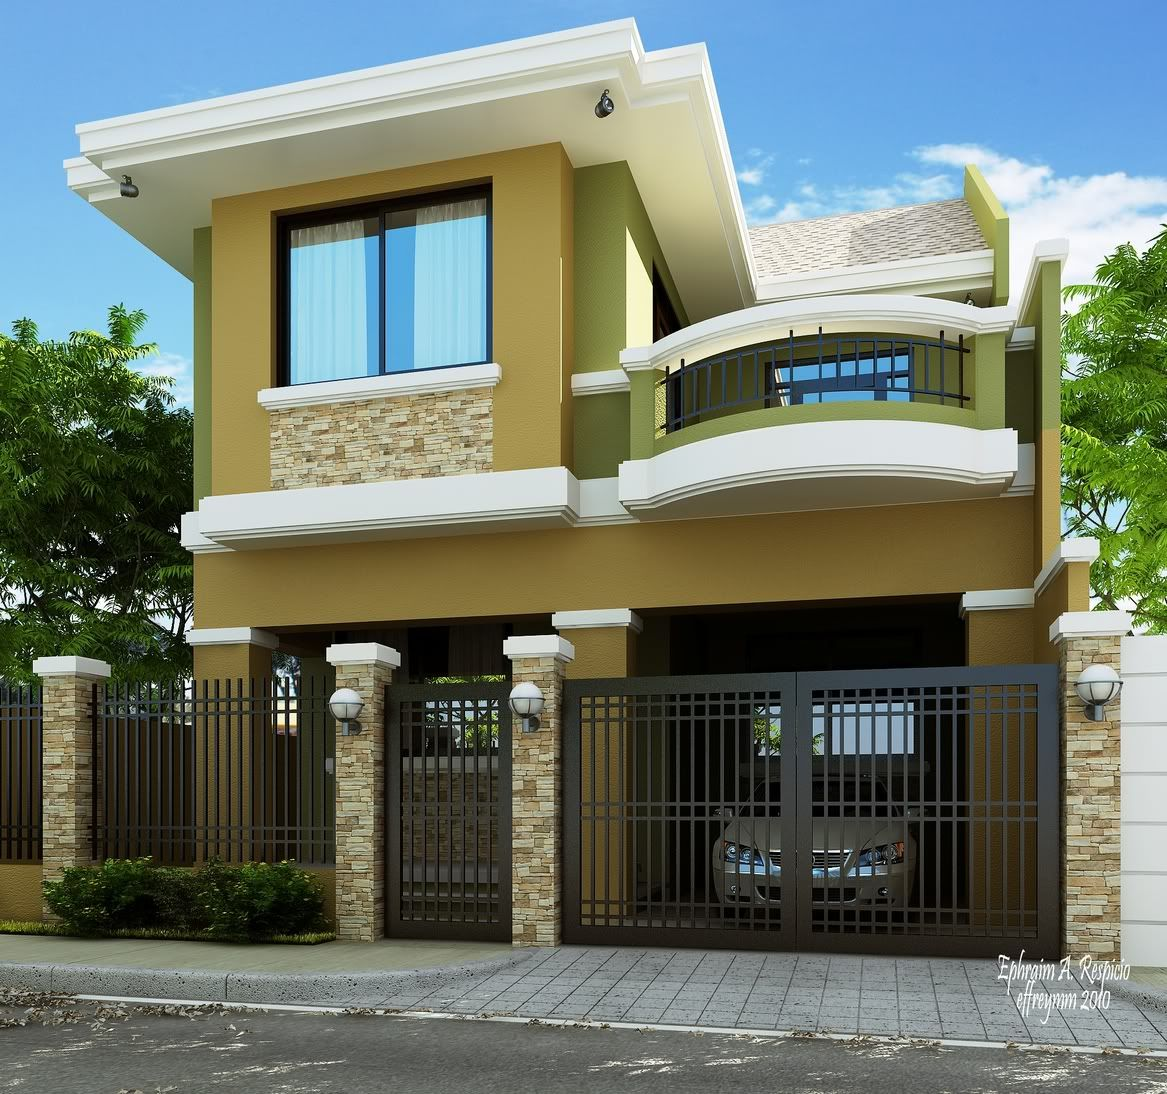 modern 2 story house plans modern design 1 bedroom condo floor plan google search casas clasicas fachadas de casas 415